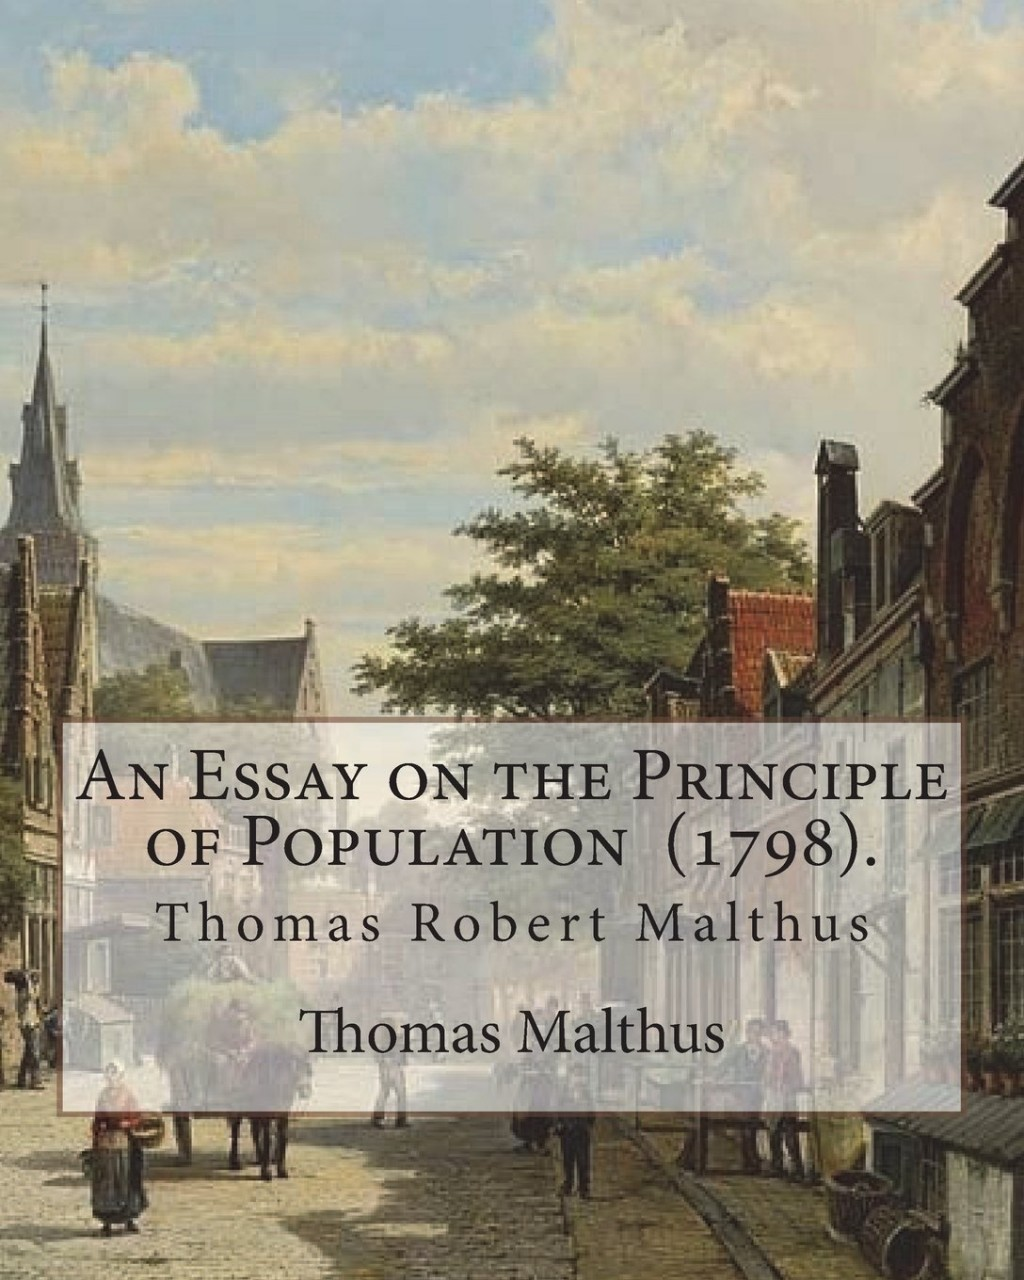 018 Essay On The Principle Of Population 71giypnbhsl Singular Thomas Malthus Sparknotes Advocated Ap Euro Large